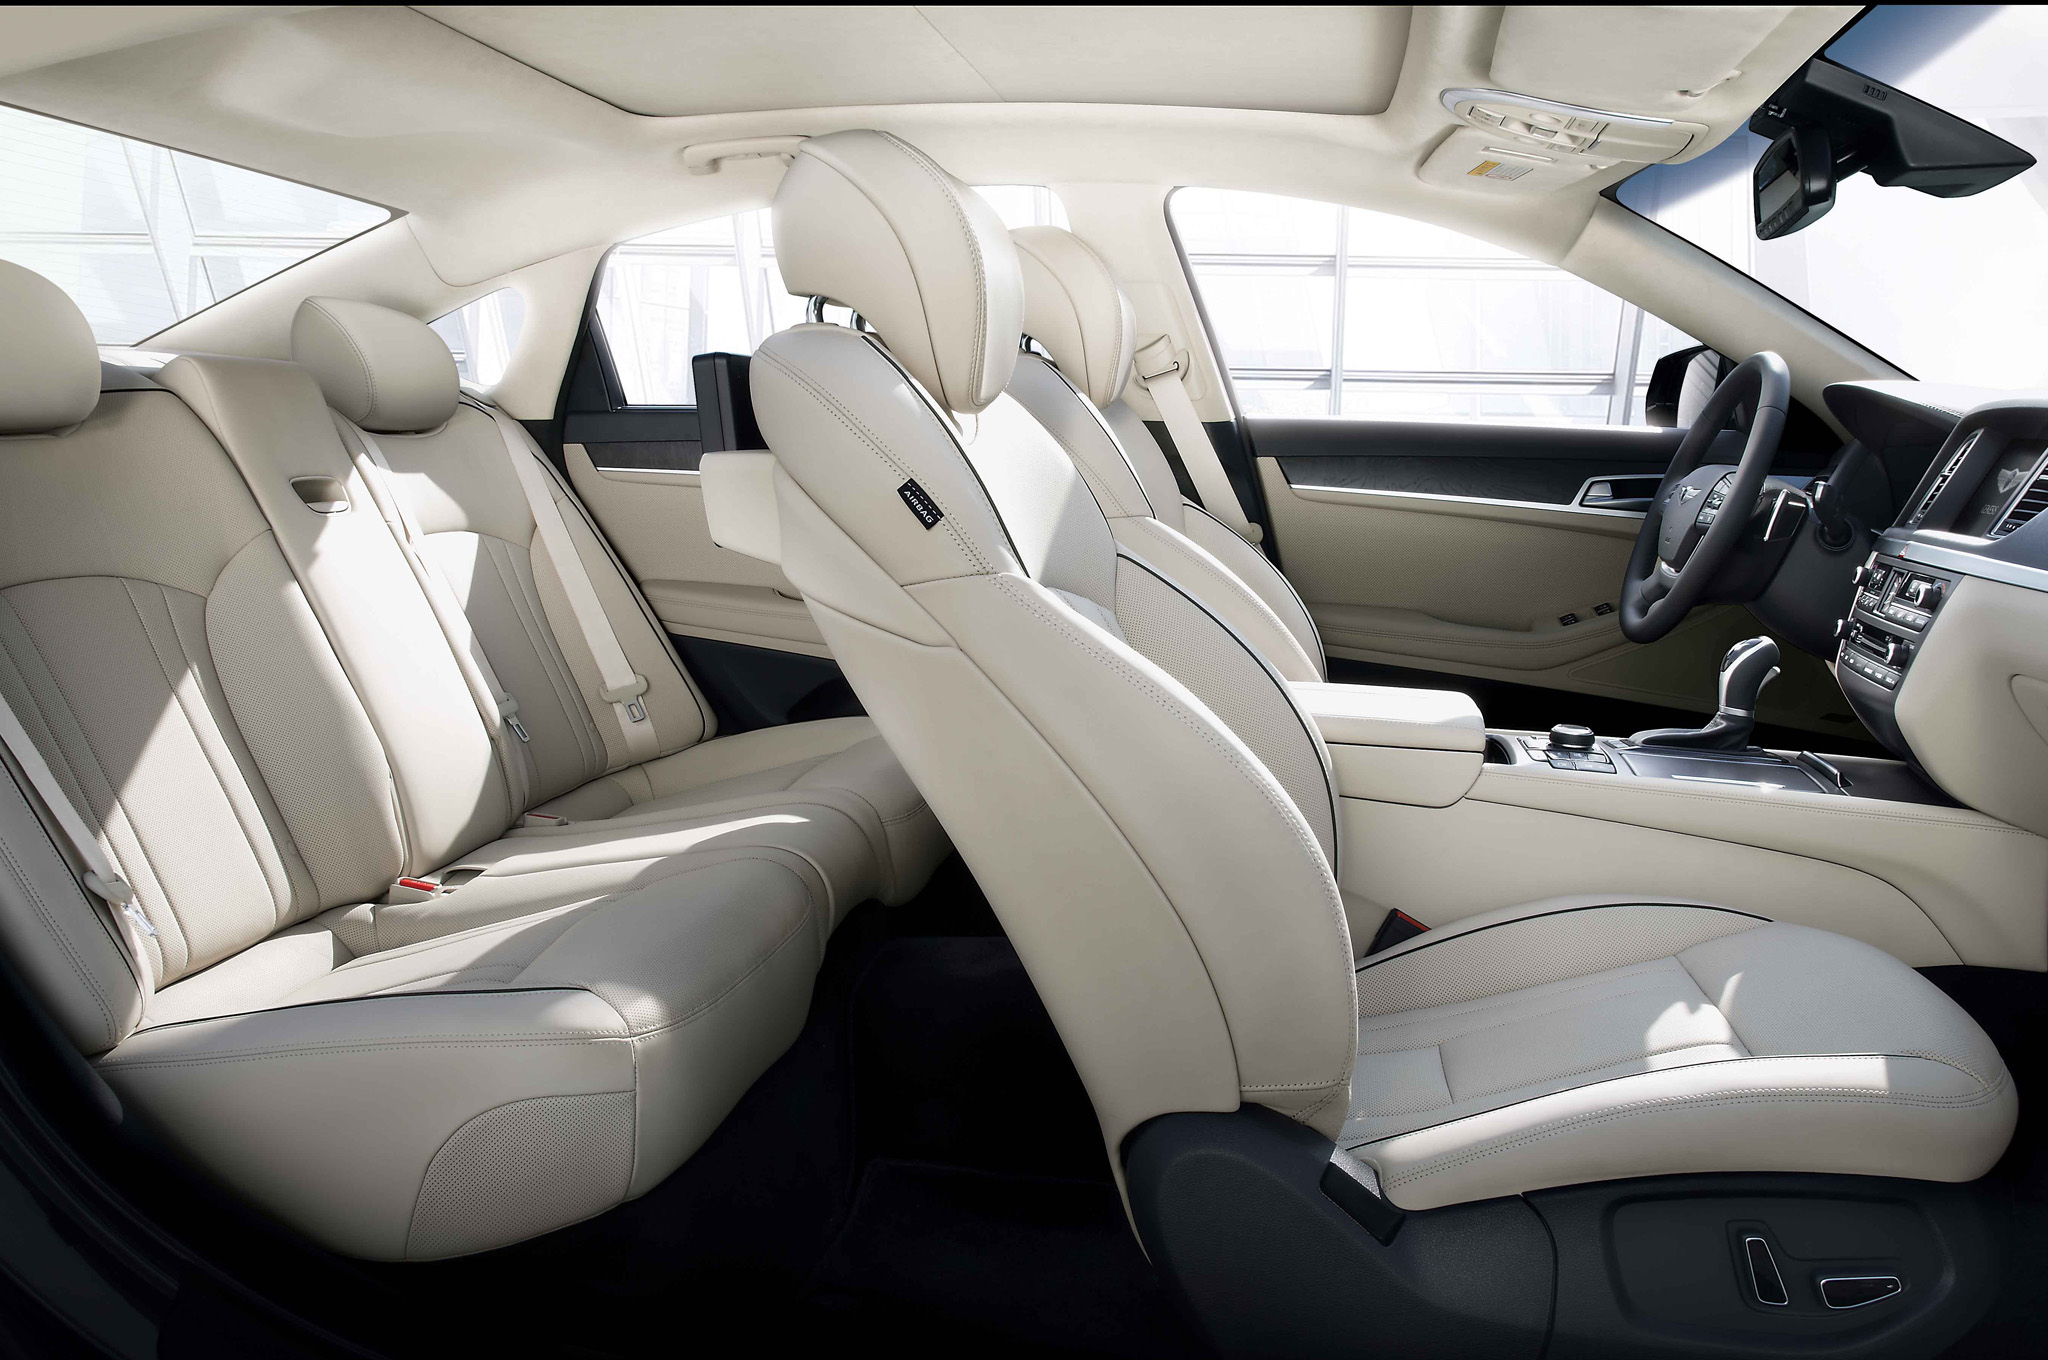 2015 Hyundai Genesis Interior Details (View 6 of 11)